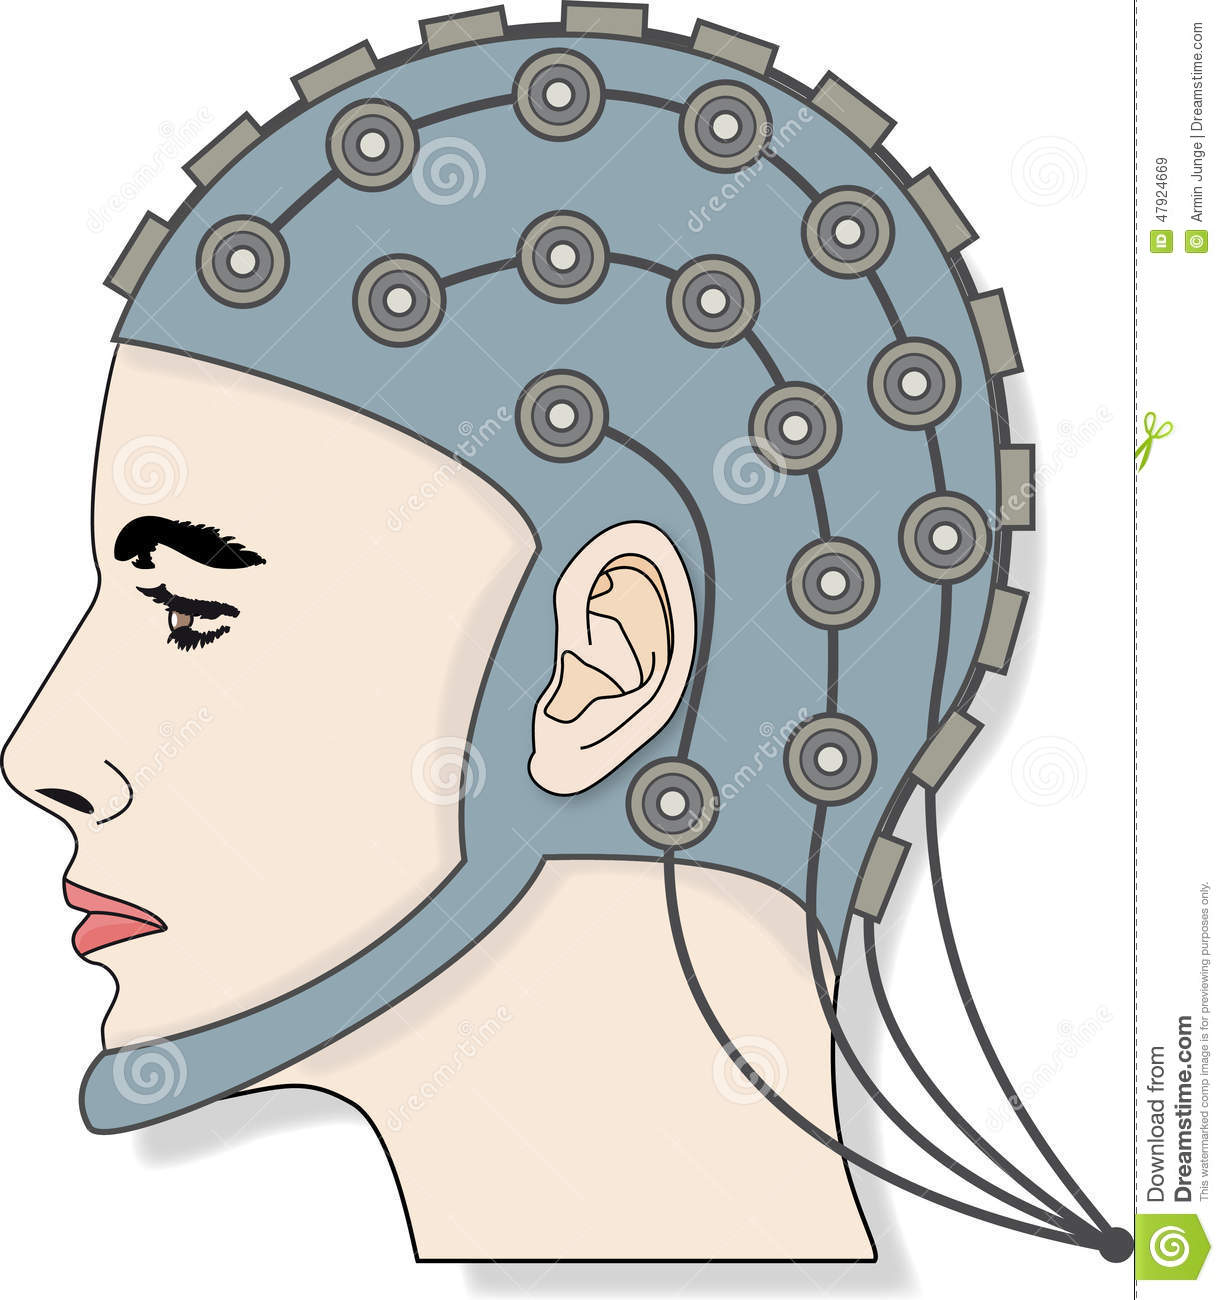 eeg 3 stock illustration illustration of neuroscience free medical clipart images free medical clipart downloads